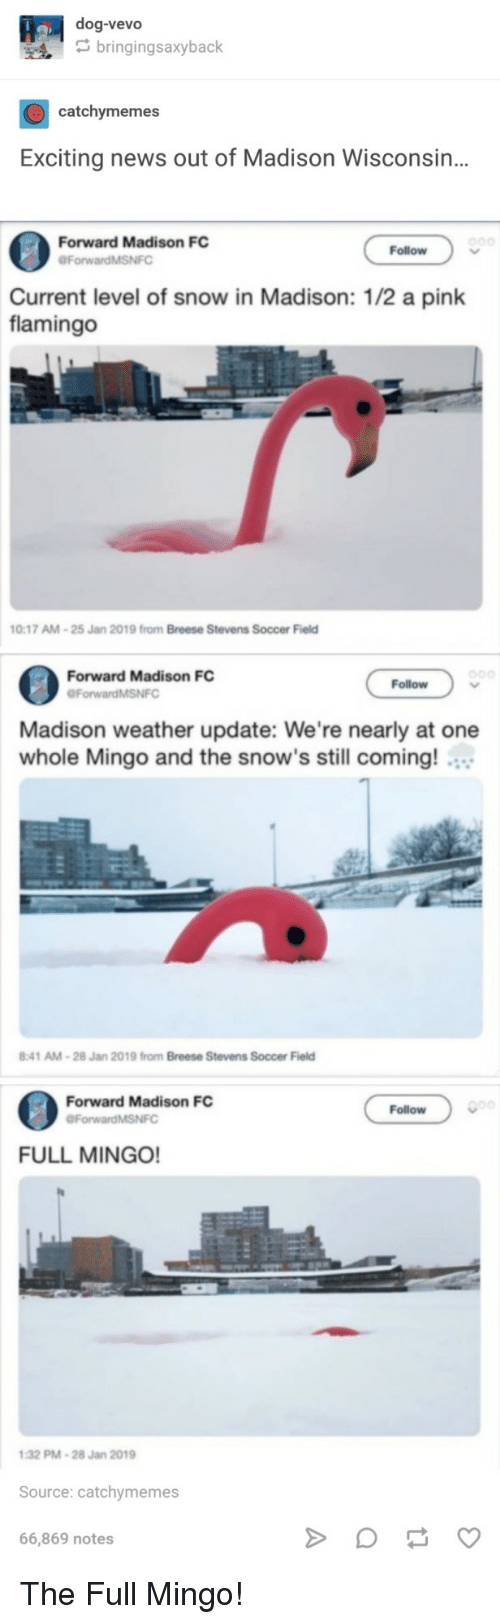 Wisconsin: dog-vevo  bringingsaxyback  catchymemes  Exciting news out of Madison Wisconsin..  Forward Madison FC  ForwardMSNFO  Follow  Current level of snow in Madison: 1/2 a pink  flamingo  0:17 AM-25 Jan  2019 from Breese Stevens  Soccer Field  Forward Madison FC  Follow  Madison weather update: We're nearly at one  whole Mingo and the snow's still coming!  :41 AM-28 Jan 2019 from Breese Stevens Soccer Field  Forward Madison FC  Follow  ForwardMSNFC  FULL MINGO!  32 PM-28 Jan 2019  Source: catchymemes  66,869 notes The Full Mingo!